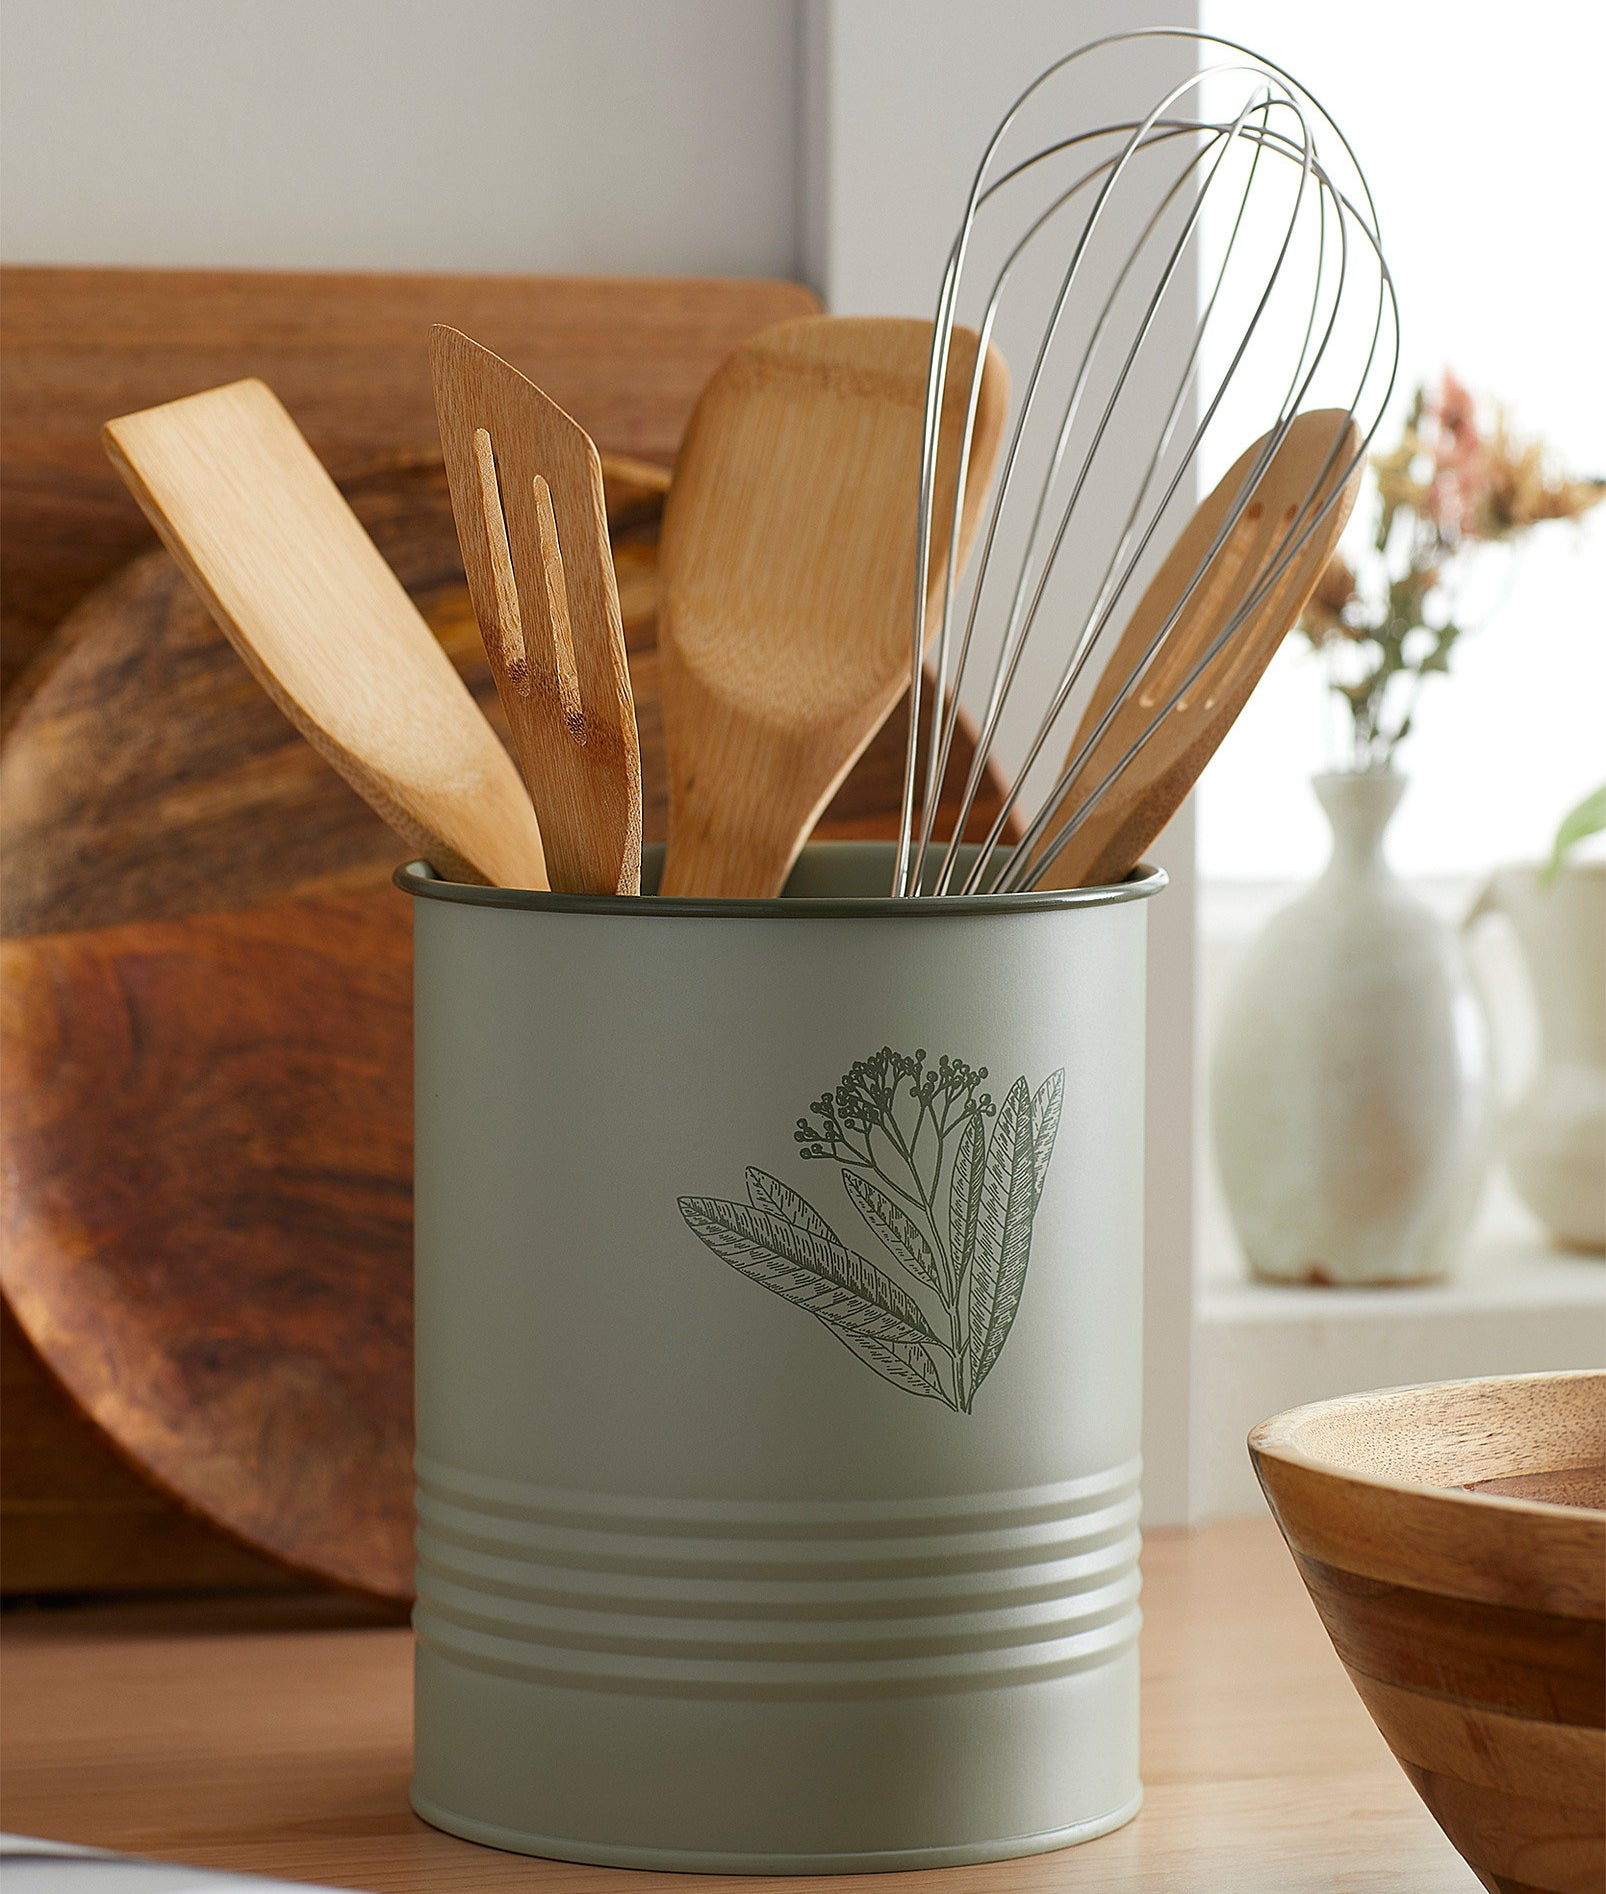 A cute canister with a flower on it holding ladles and spatulas